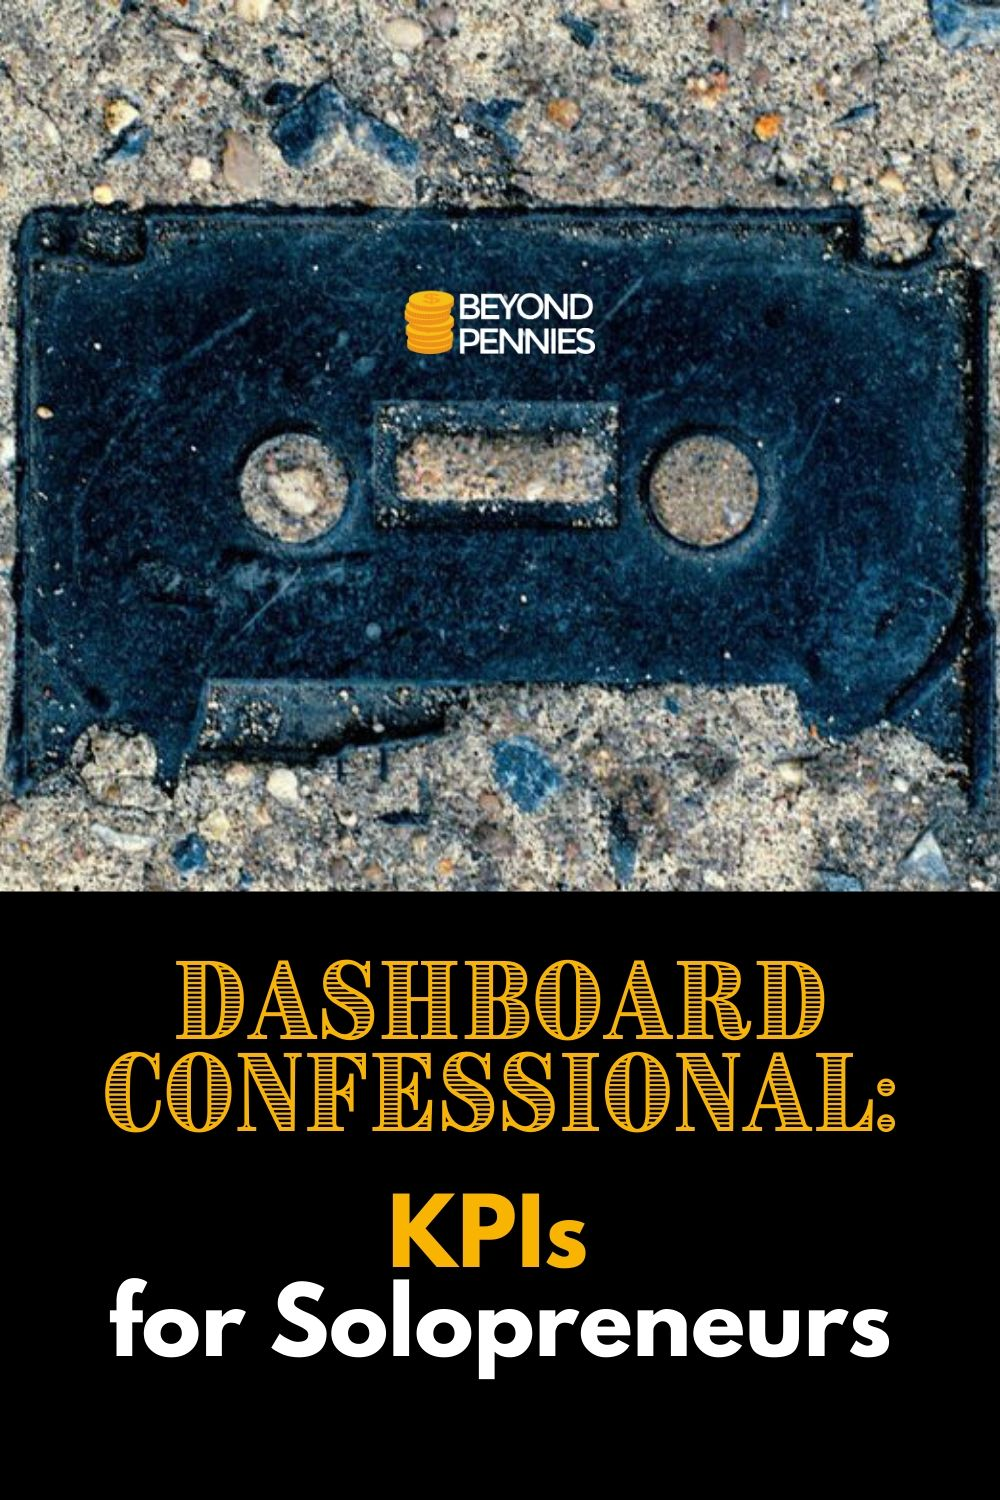 Dashboard Confessional: KPIs for Solopreneurs